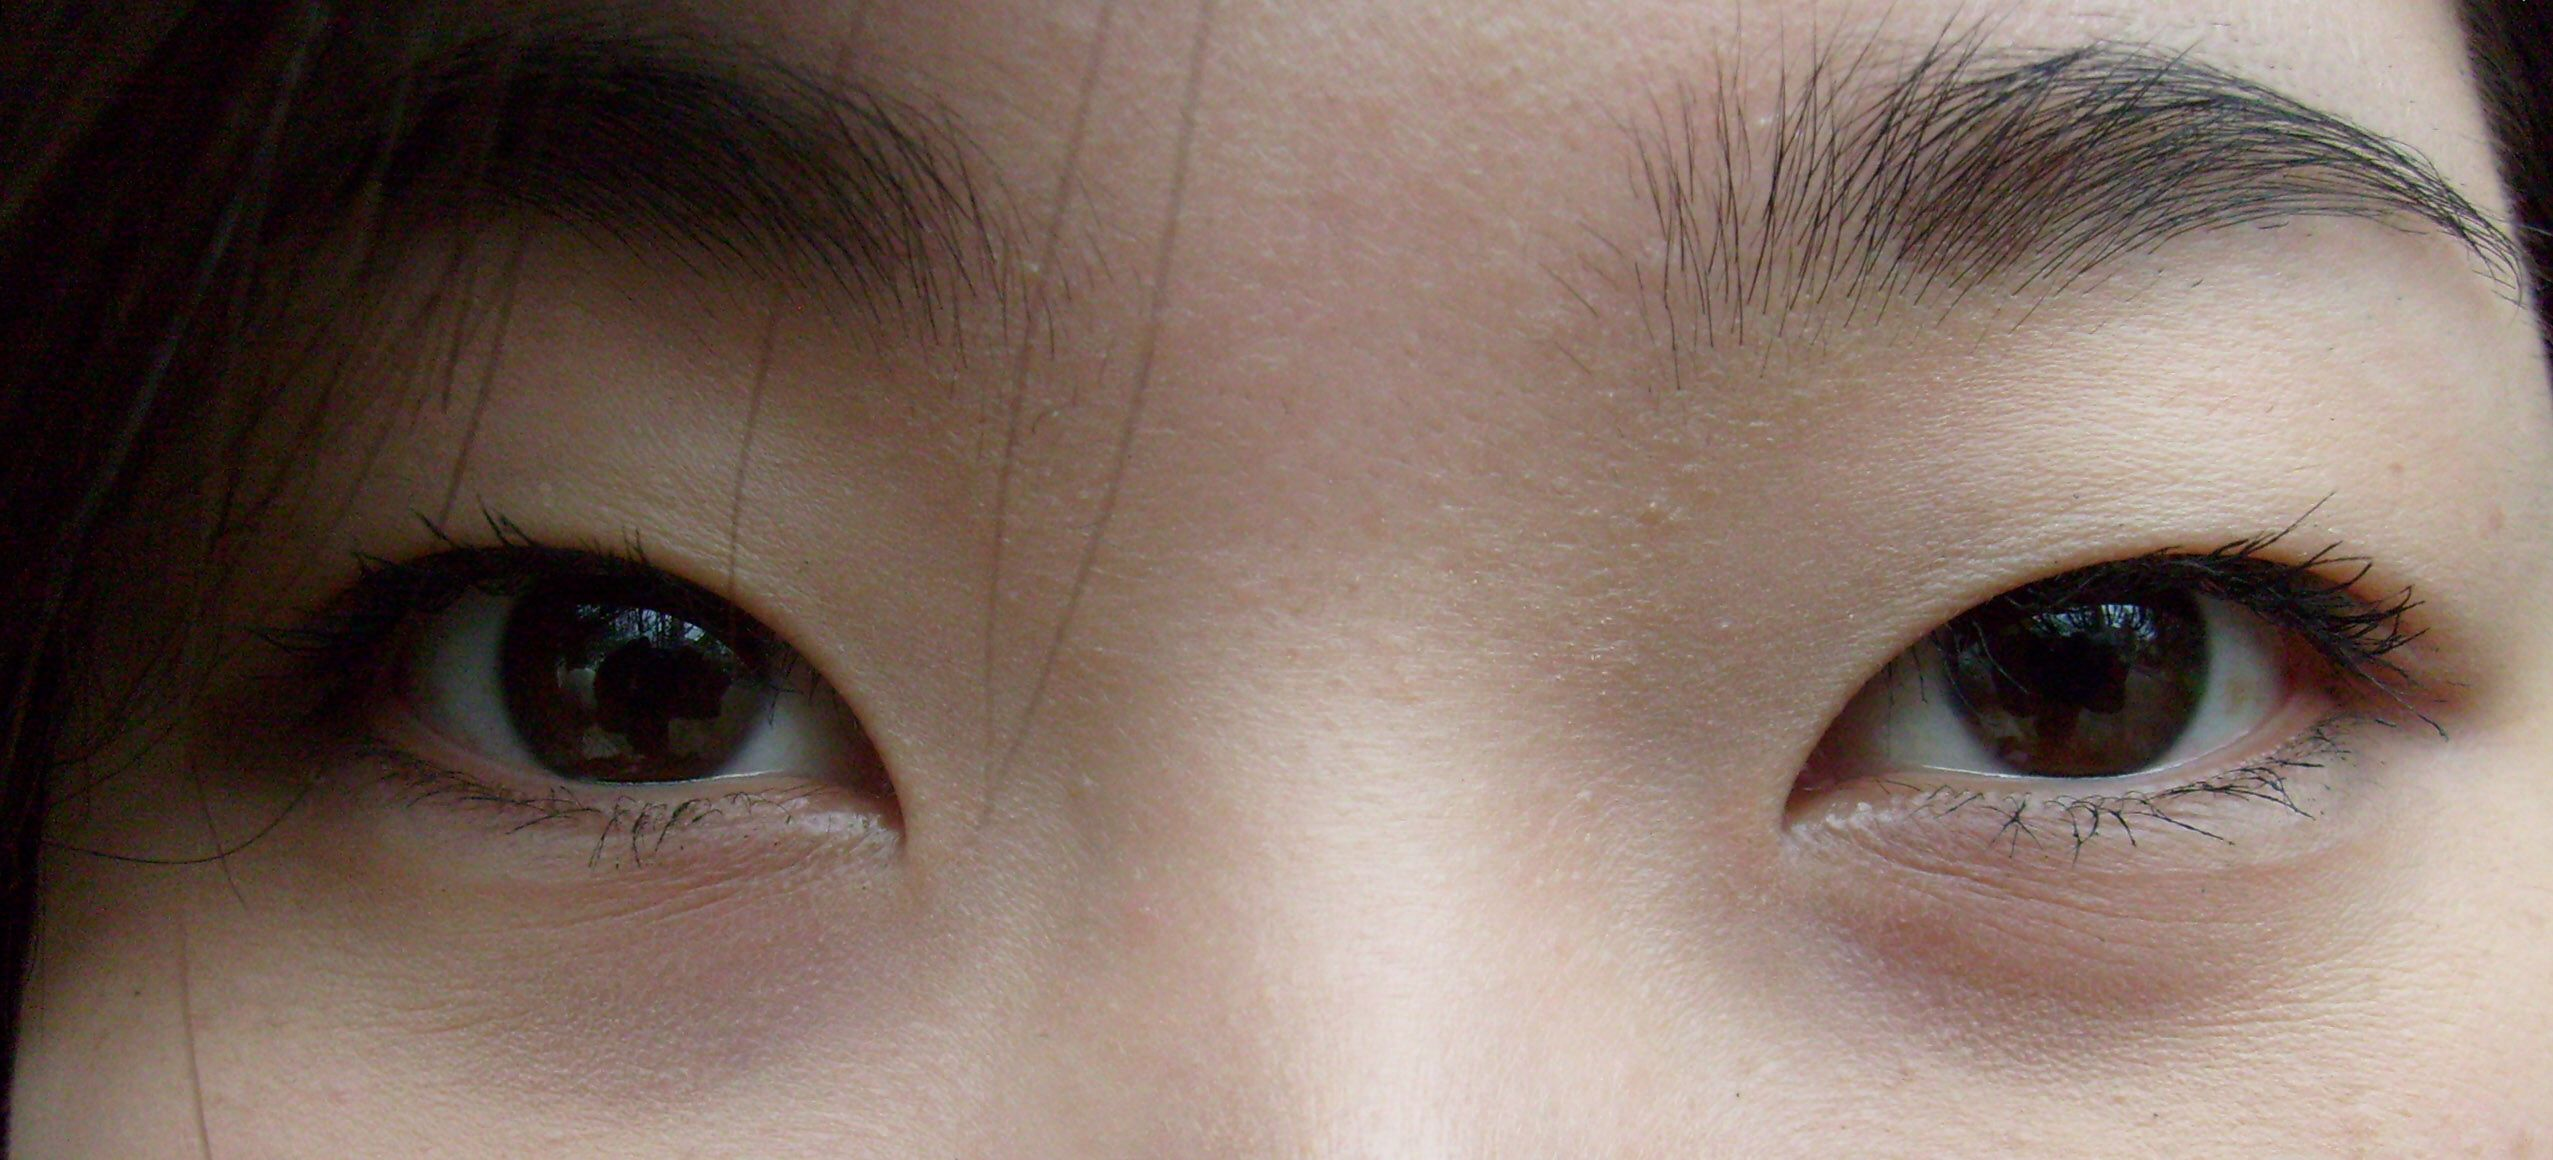 Asian Heavy Fold Eyelid Epicanthic Fold Photos Of Eyes Asian Eyes